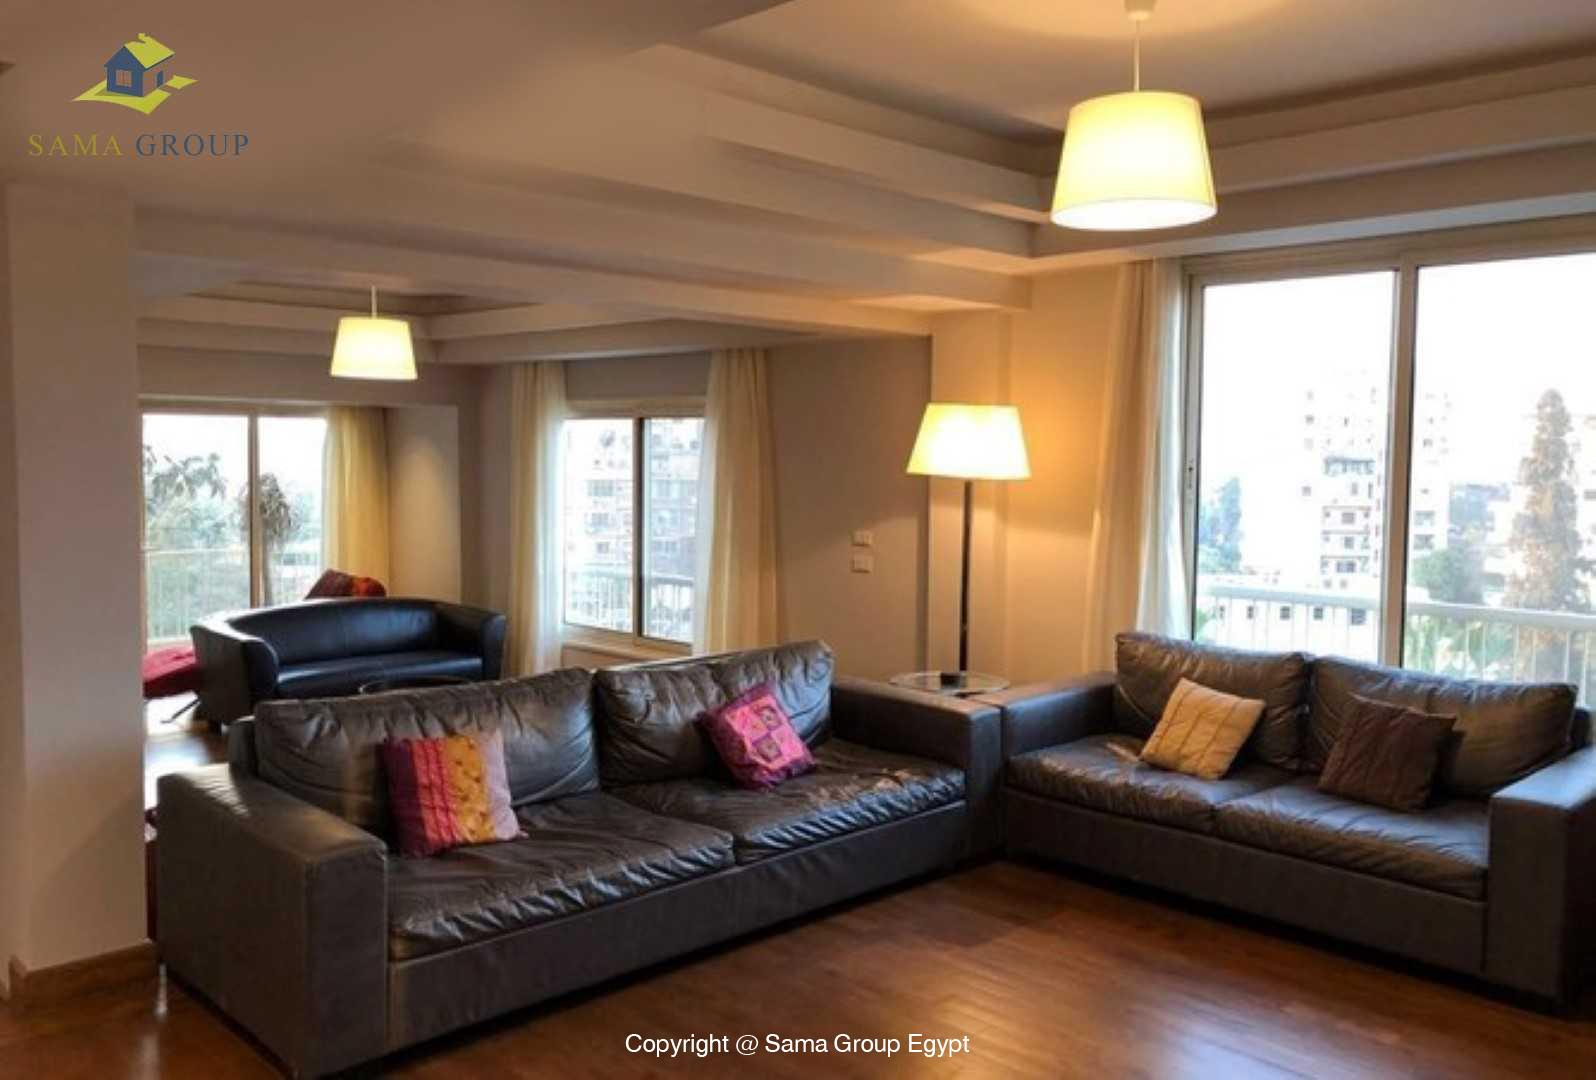 Apartment For Rent In Zamalek,Modern Furnished,Apartment NO #1